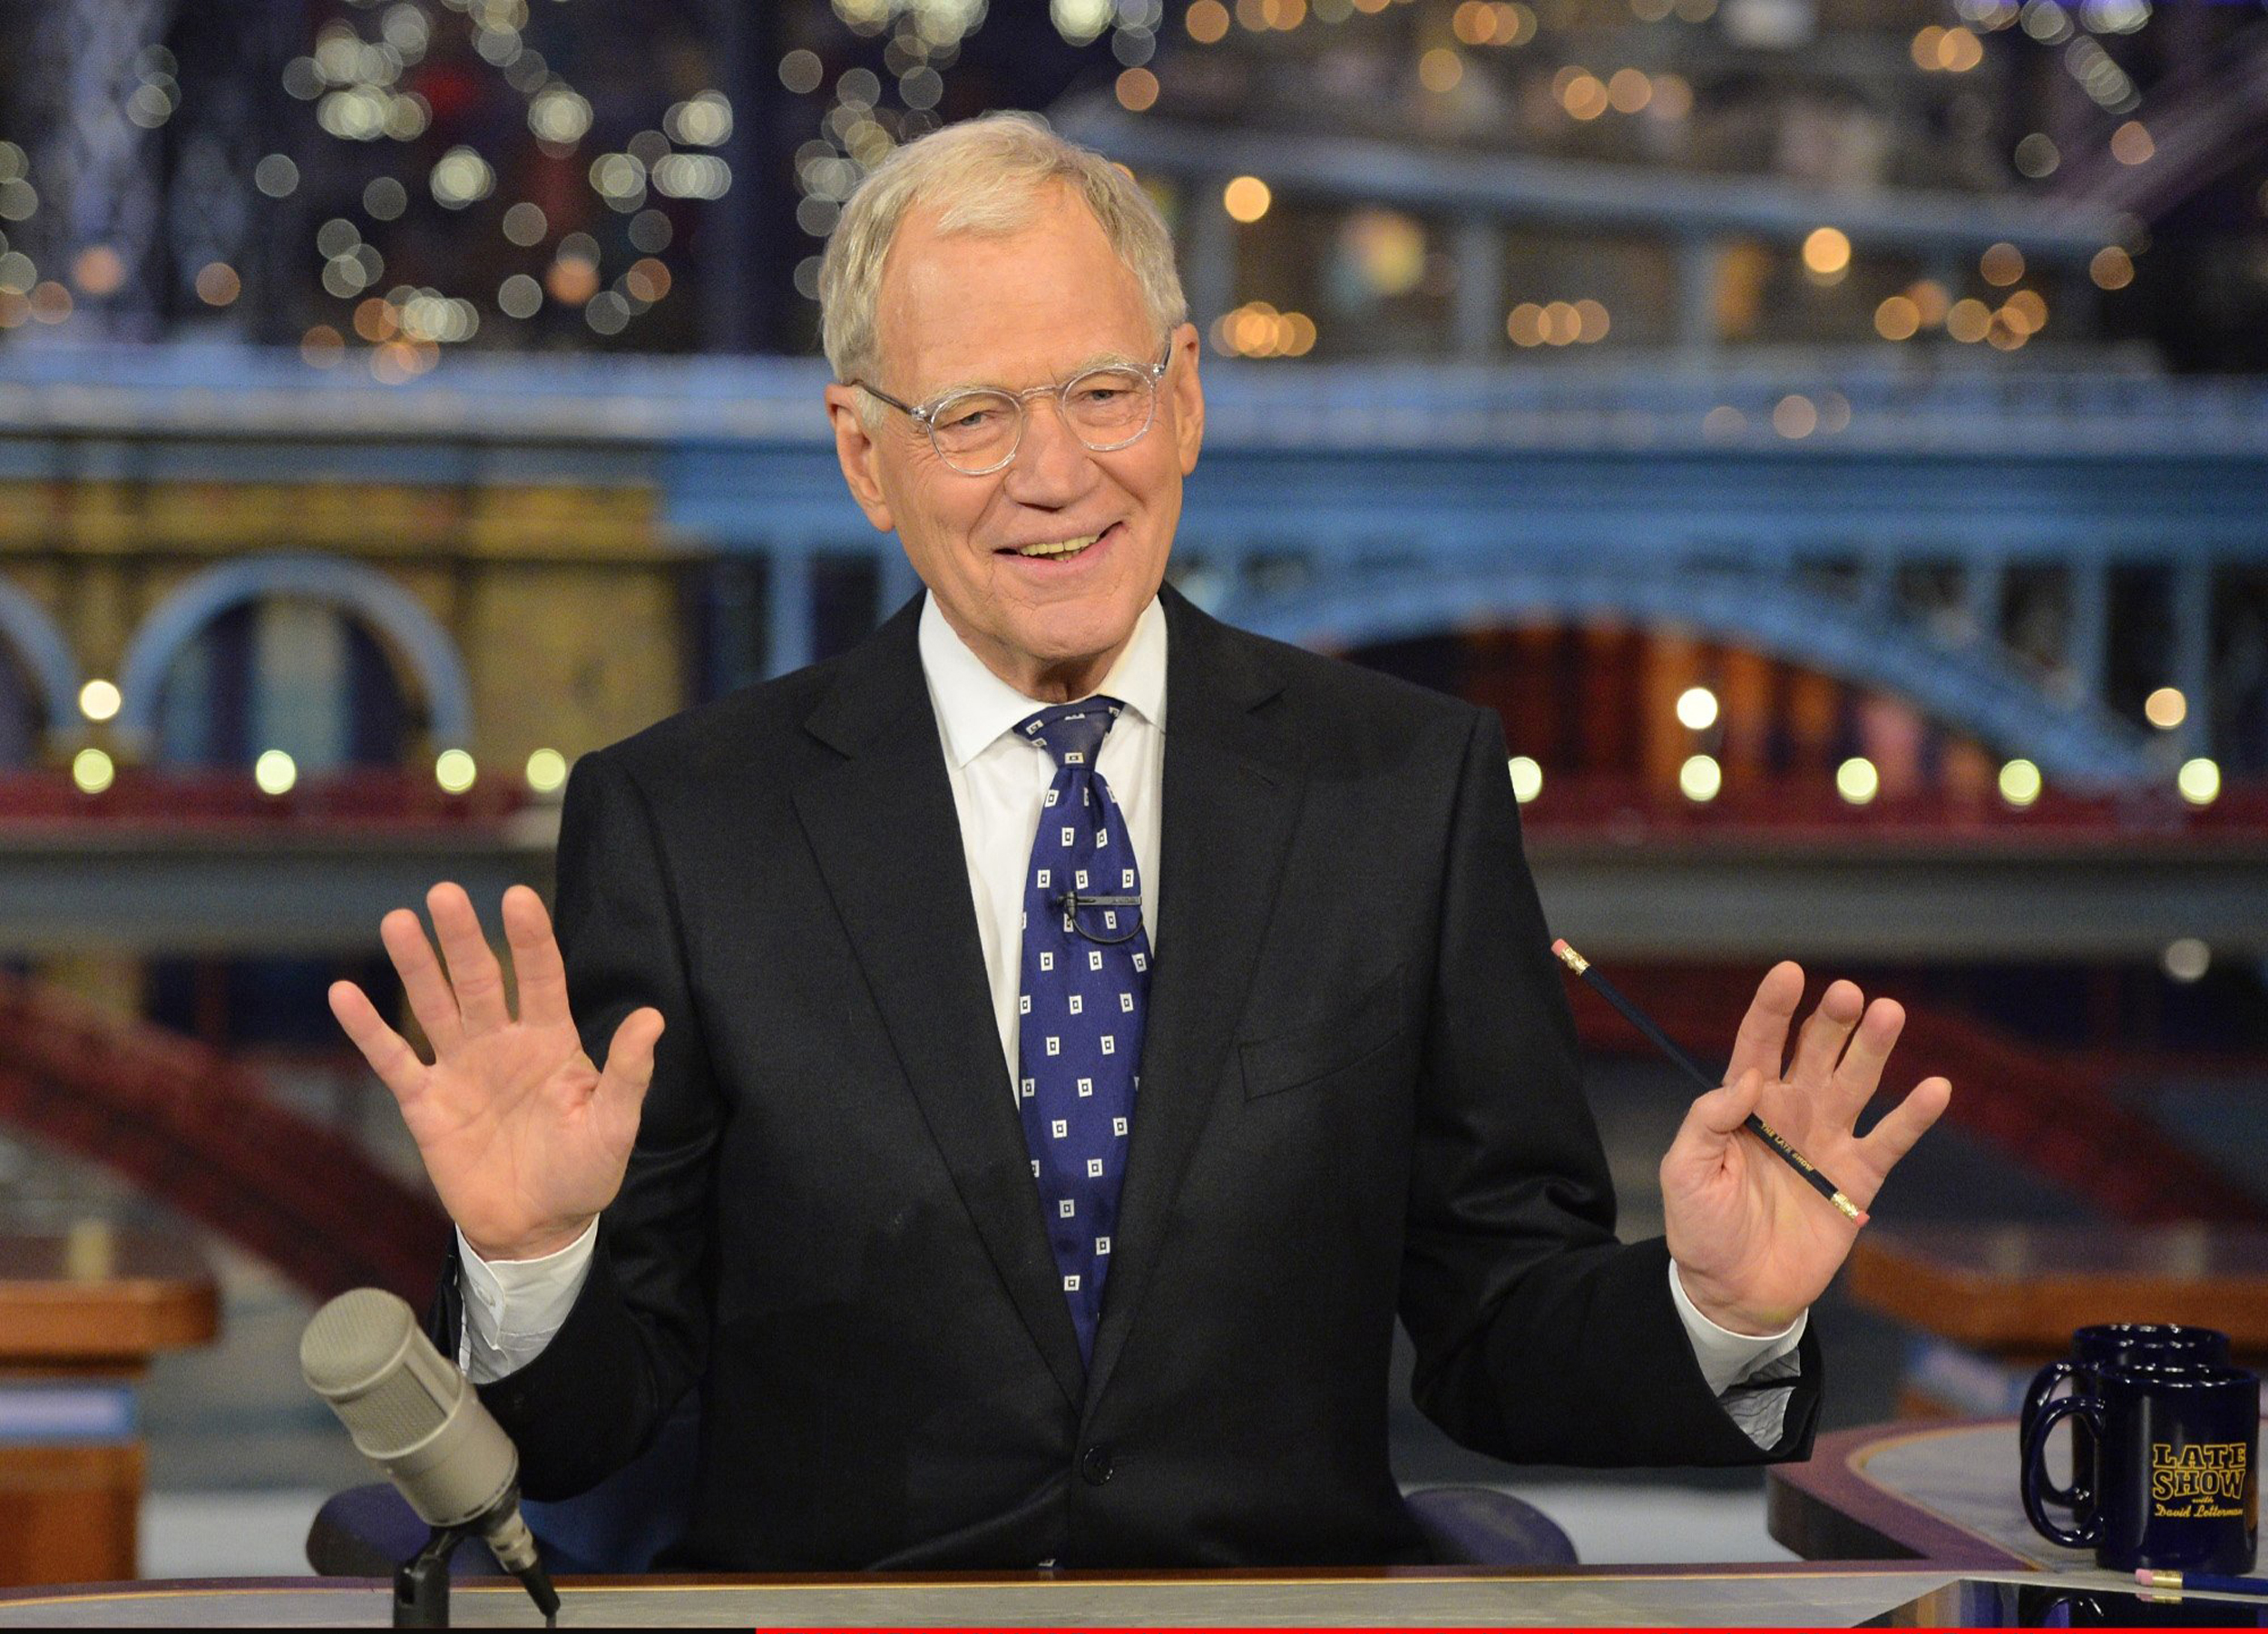 Image: The Late Show with David Letterman